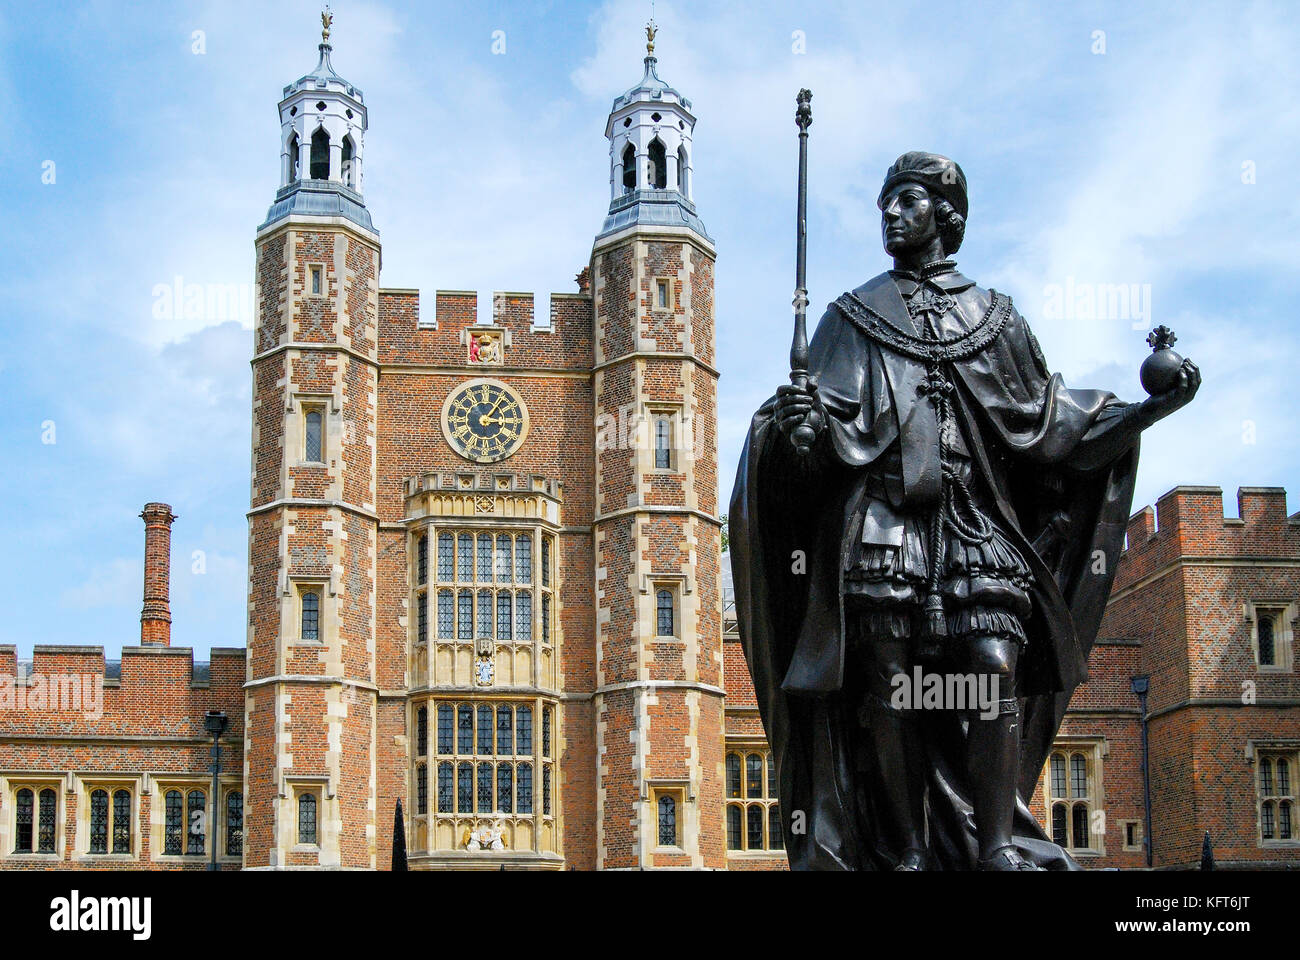 Statue of Henry VI (founder) and Lupton's Tower, School Yard, Eton College, Eton, Berkshire, England, United - Stock Image